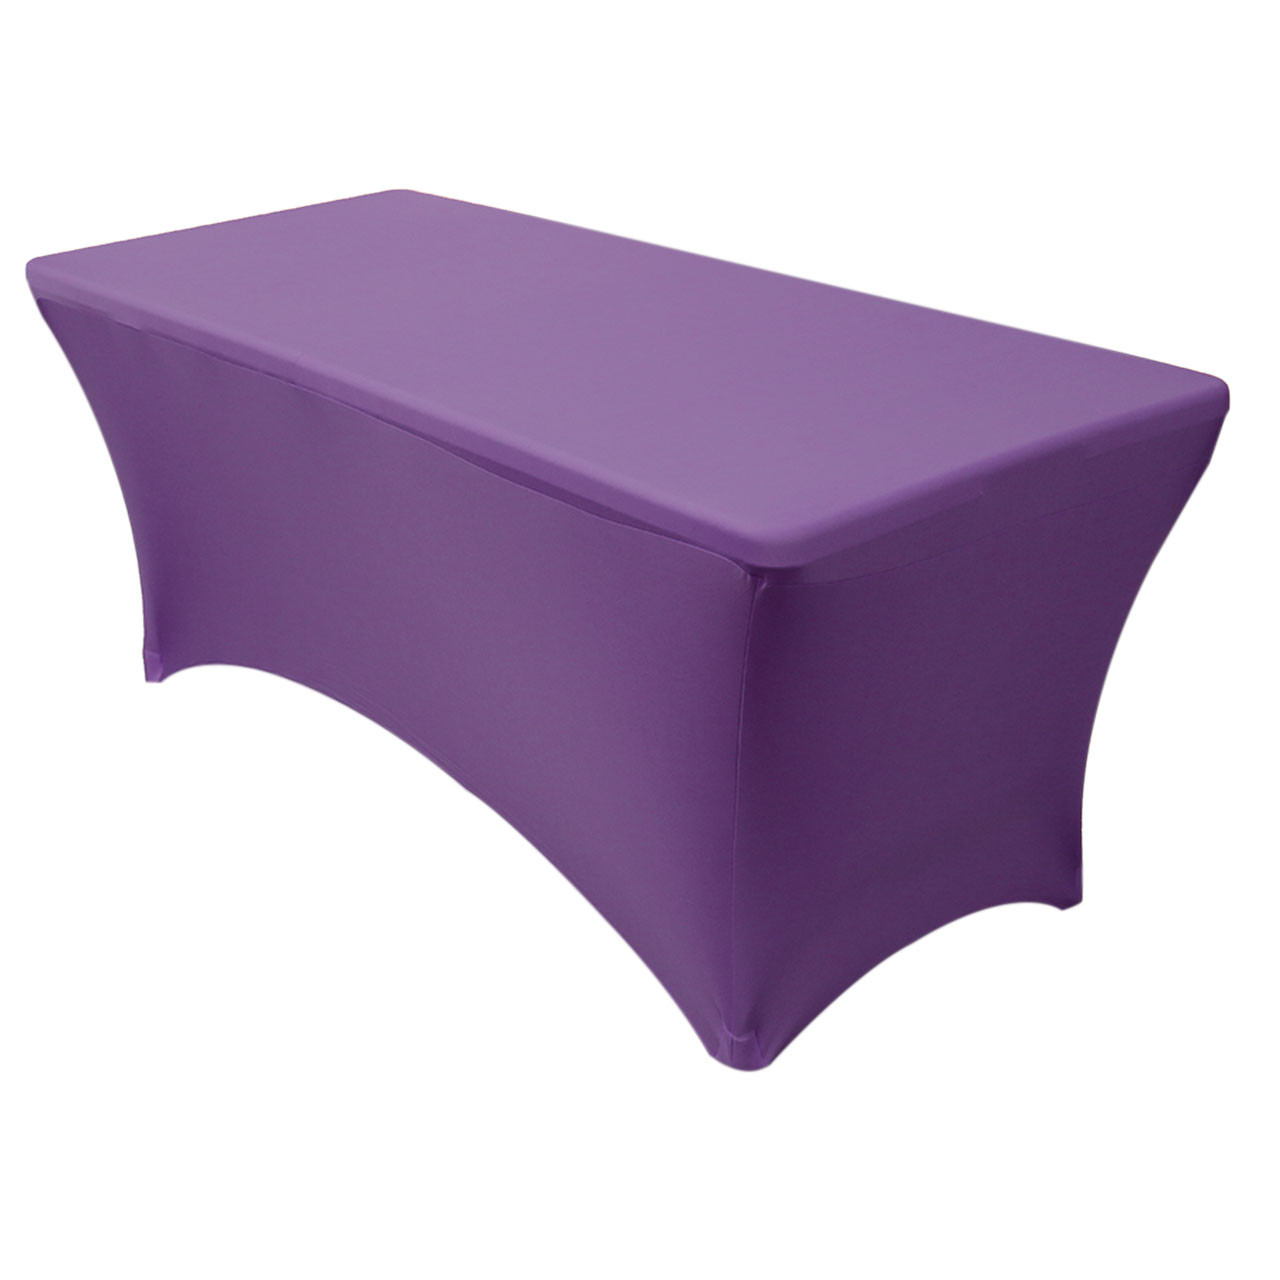 225 & Stretch Spandex 6 ft Rectangular Table Cover Purple